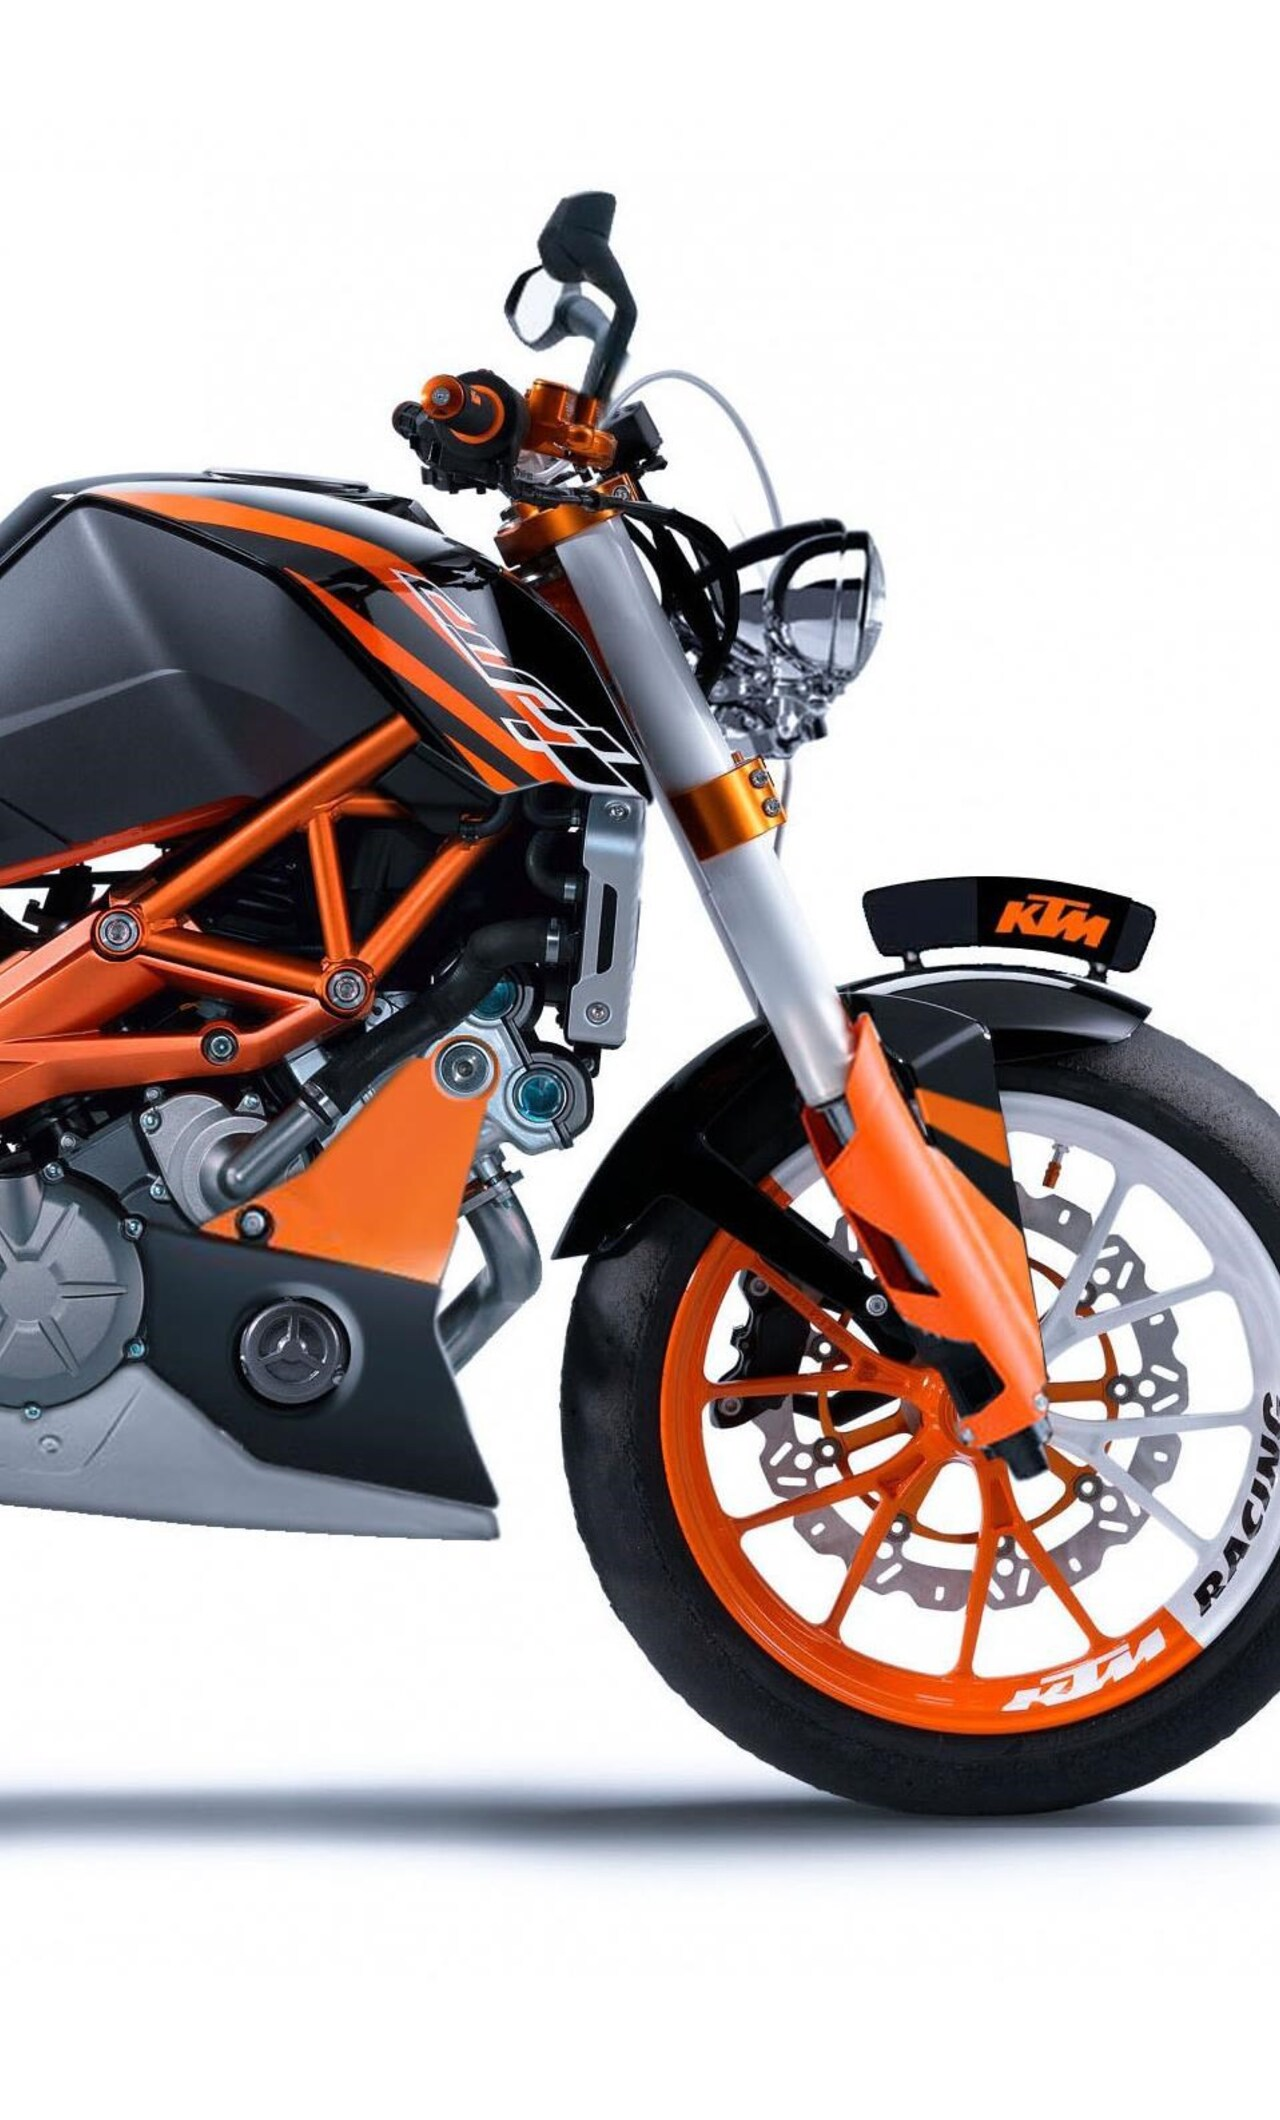 1280x2120 ktm duke 125cc iphone 6 hd 4k wallpapers images backgrounds photos and pictures. Black Bedroom Furniture Sets. Home Design Ideas